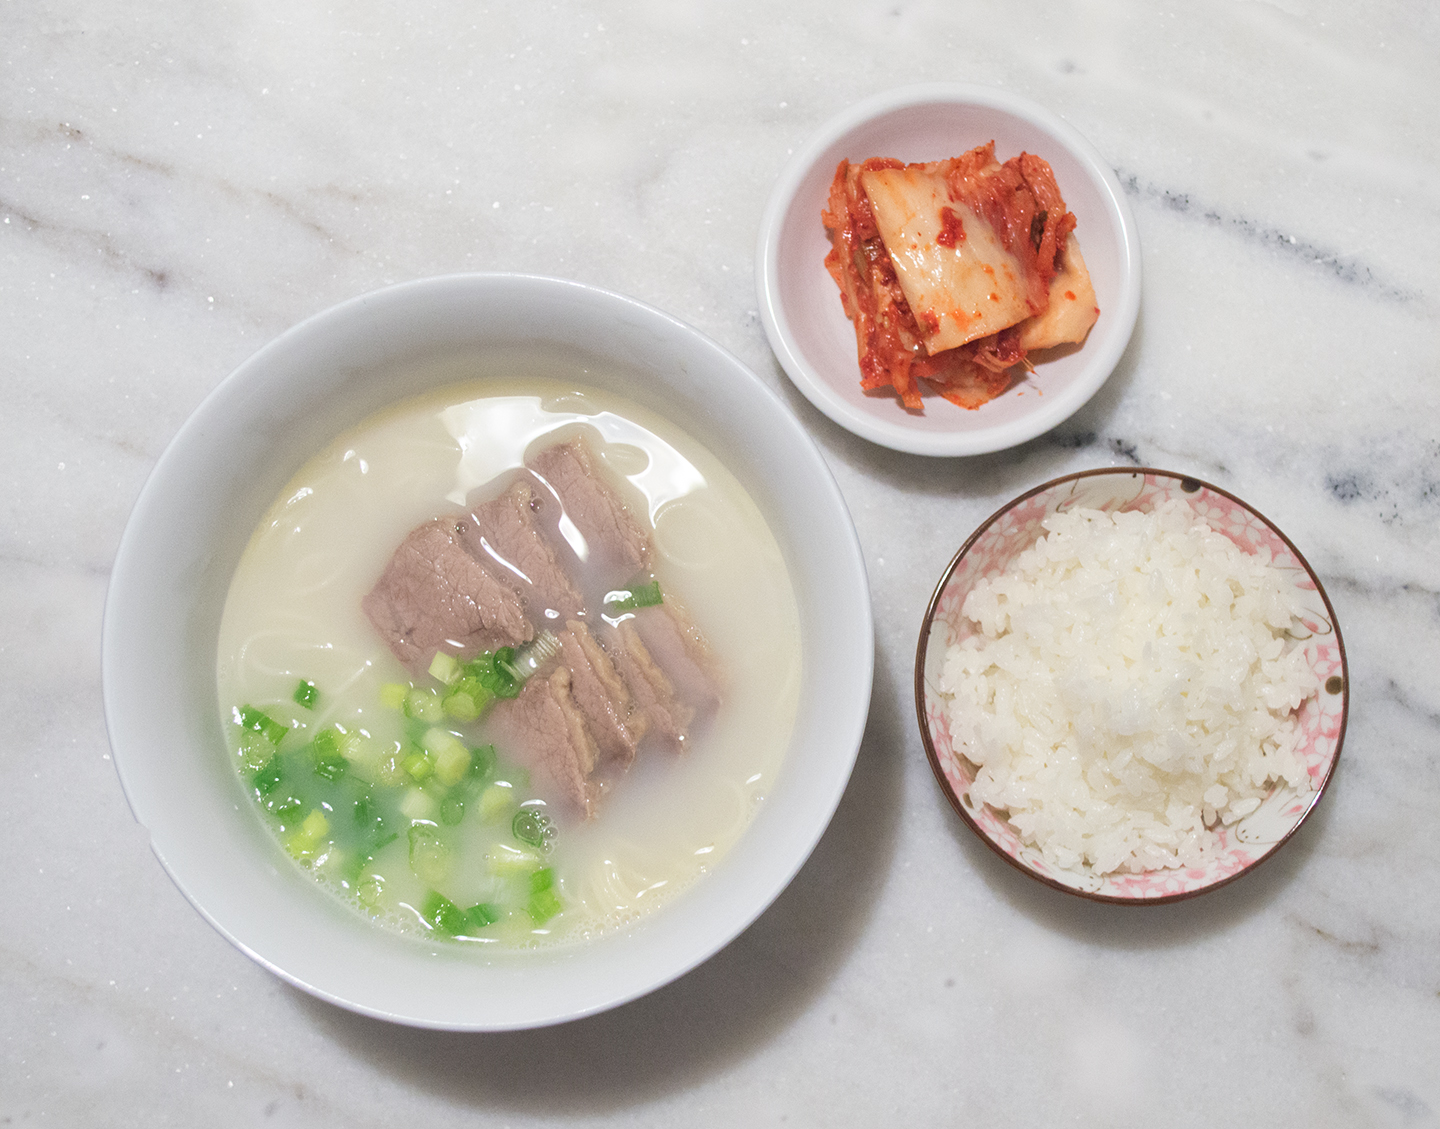 Seolleongtang (설렁탕) - Ox Bone Soup with Brisket